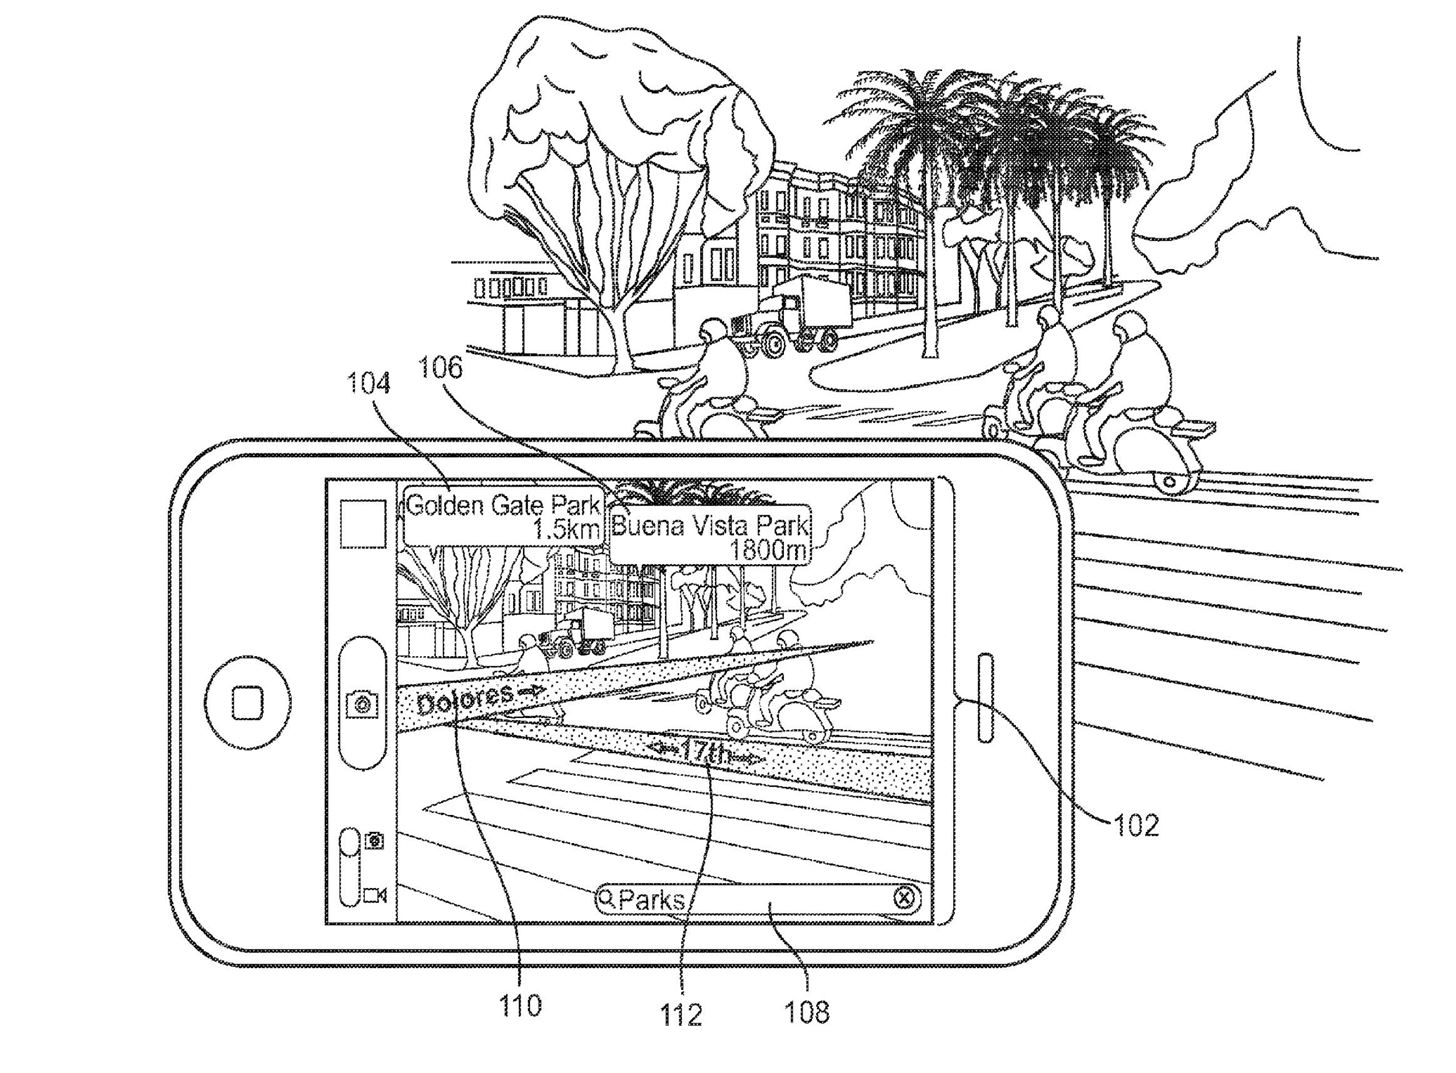 Apple Granted Patent to Make Augmented Reality Maps—Hinting at a Cool, Futuristic Version of Our Well-Worn Maps App